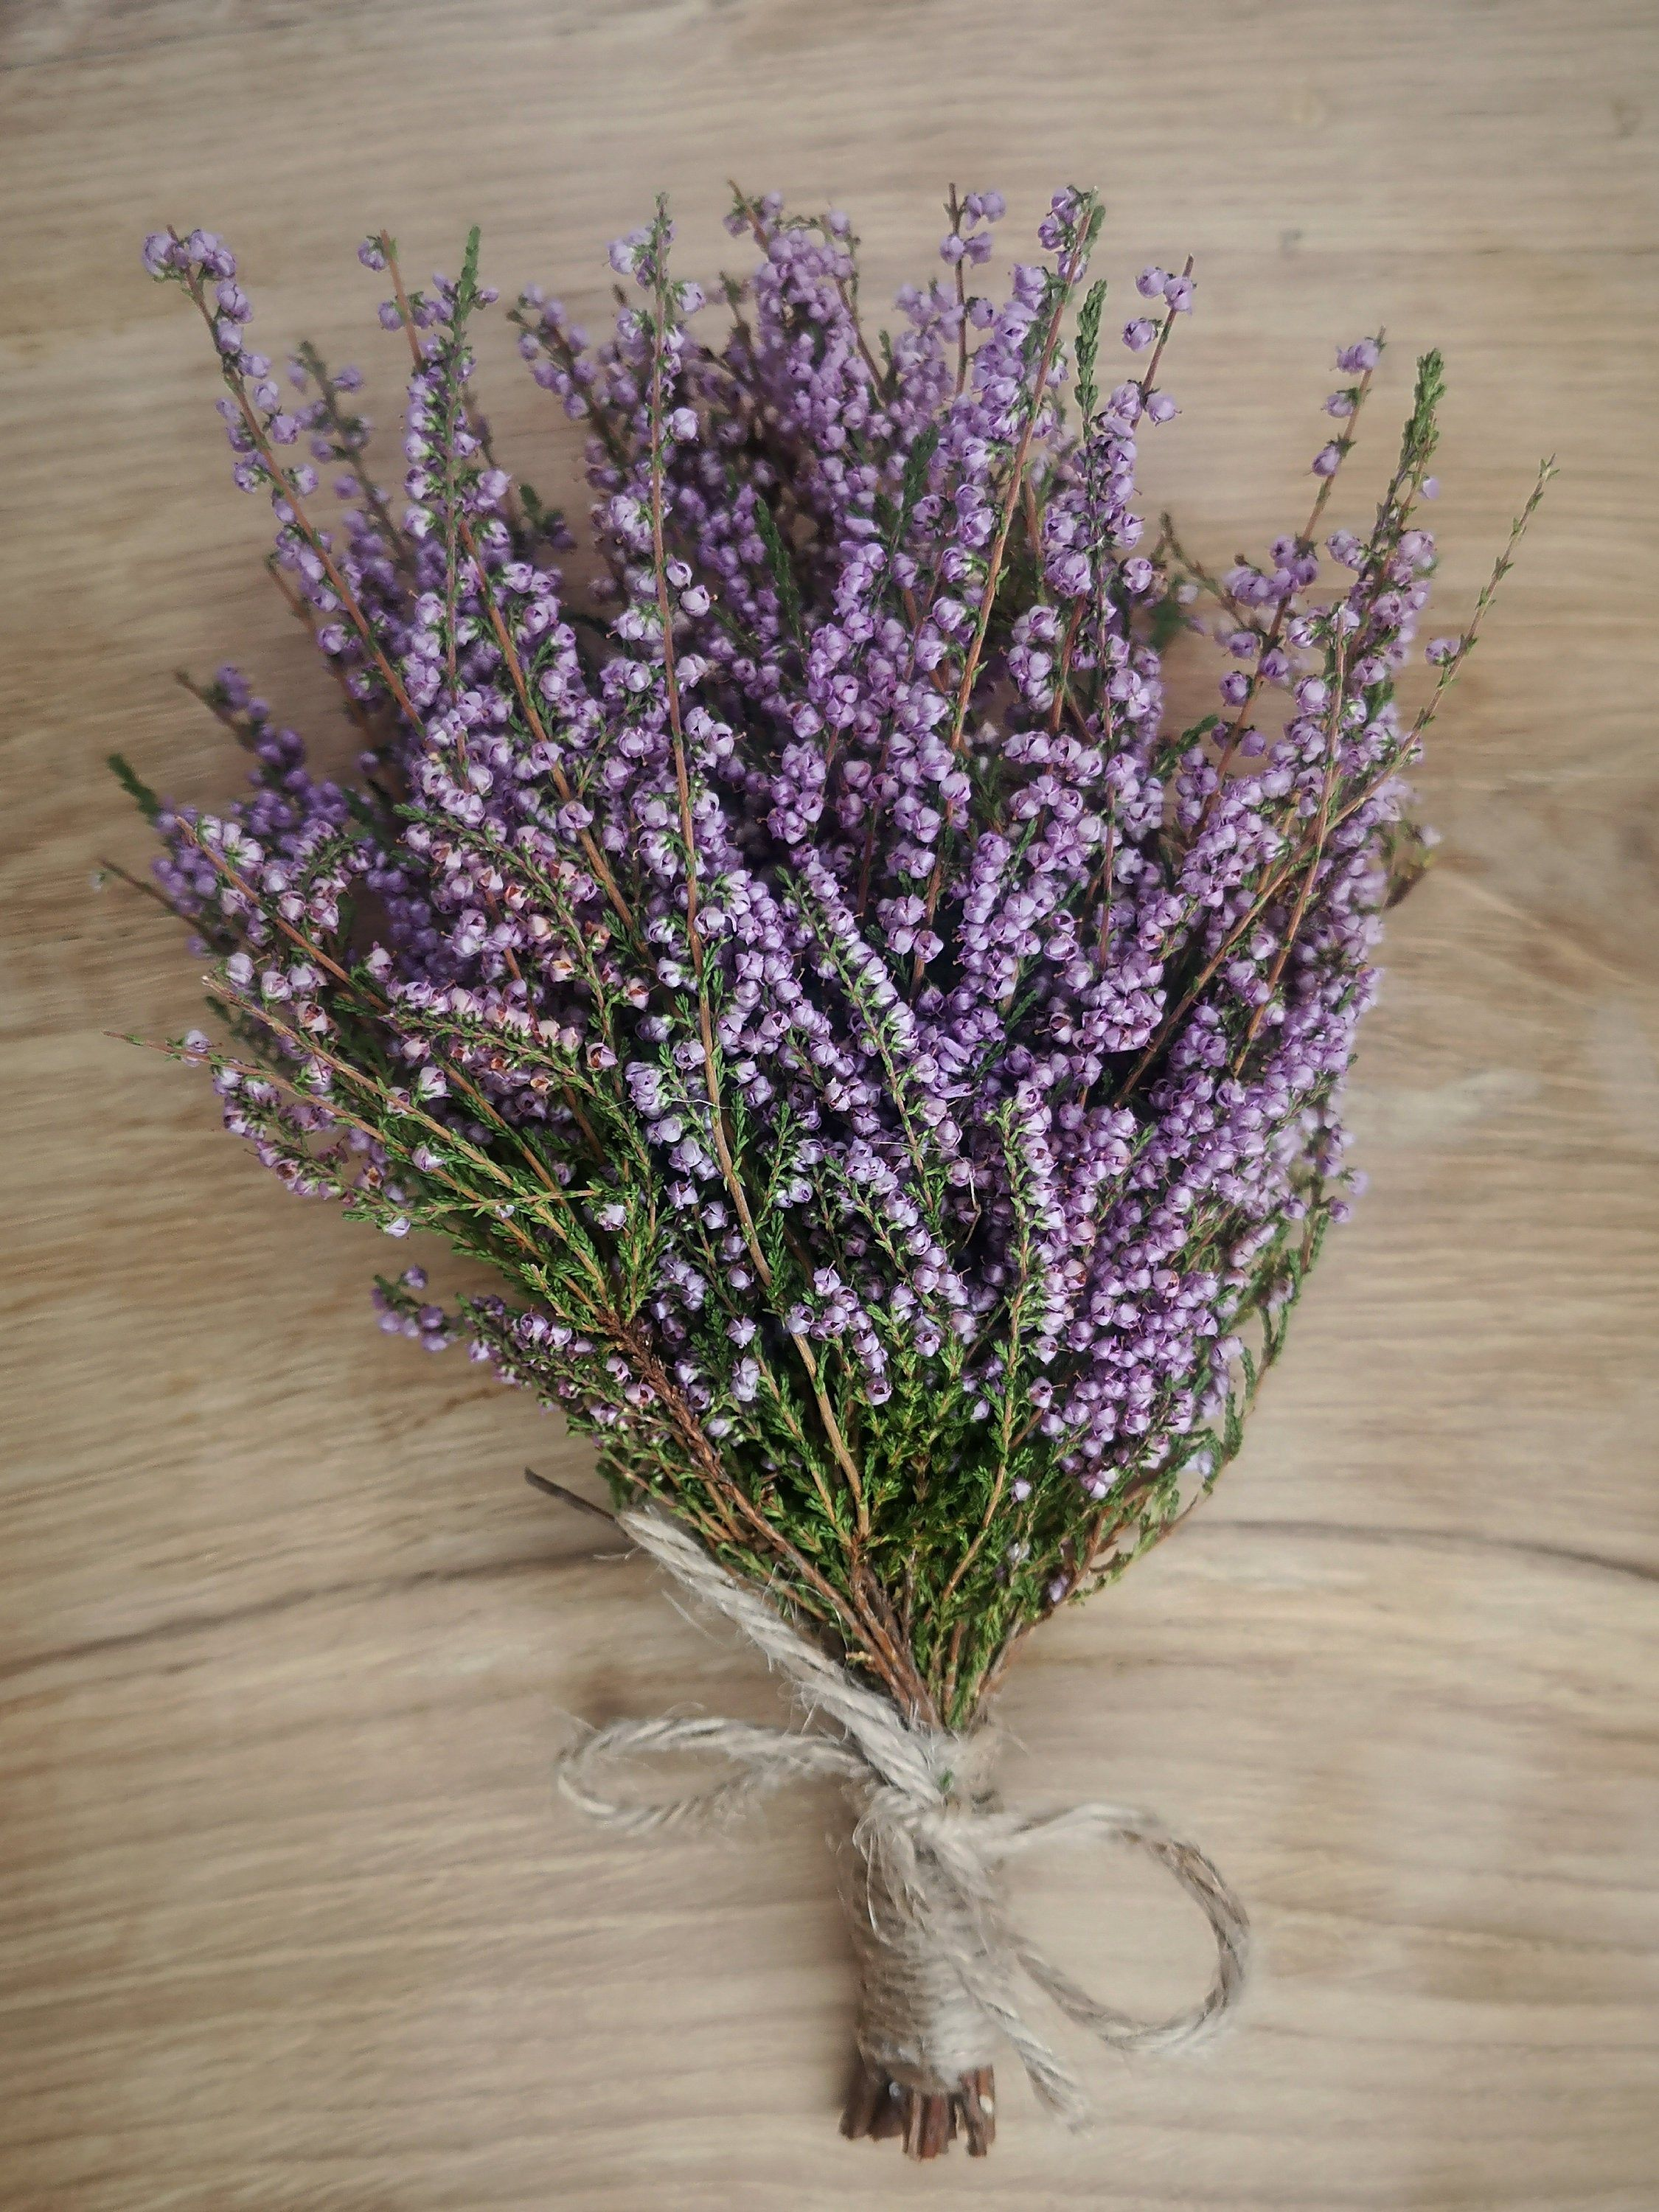 Dry Heather Flower Bouquet Dried Heather Flower Bunch Etsy Heather Flower Scottish Flowers Flowers Bouquet